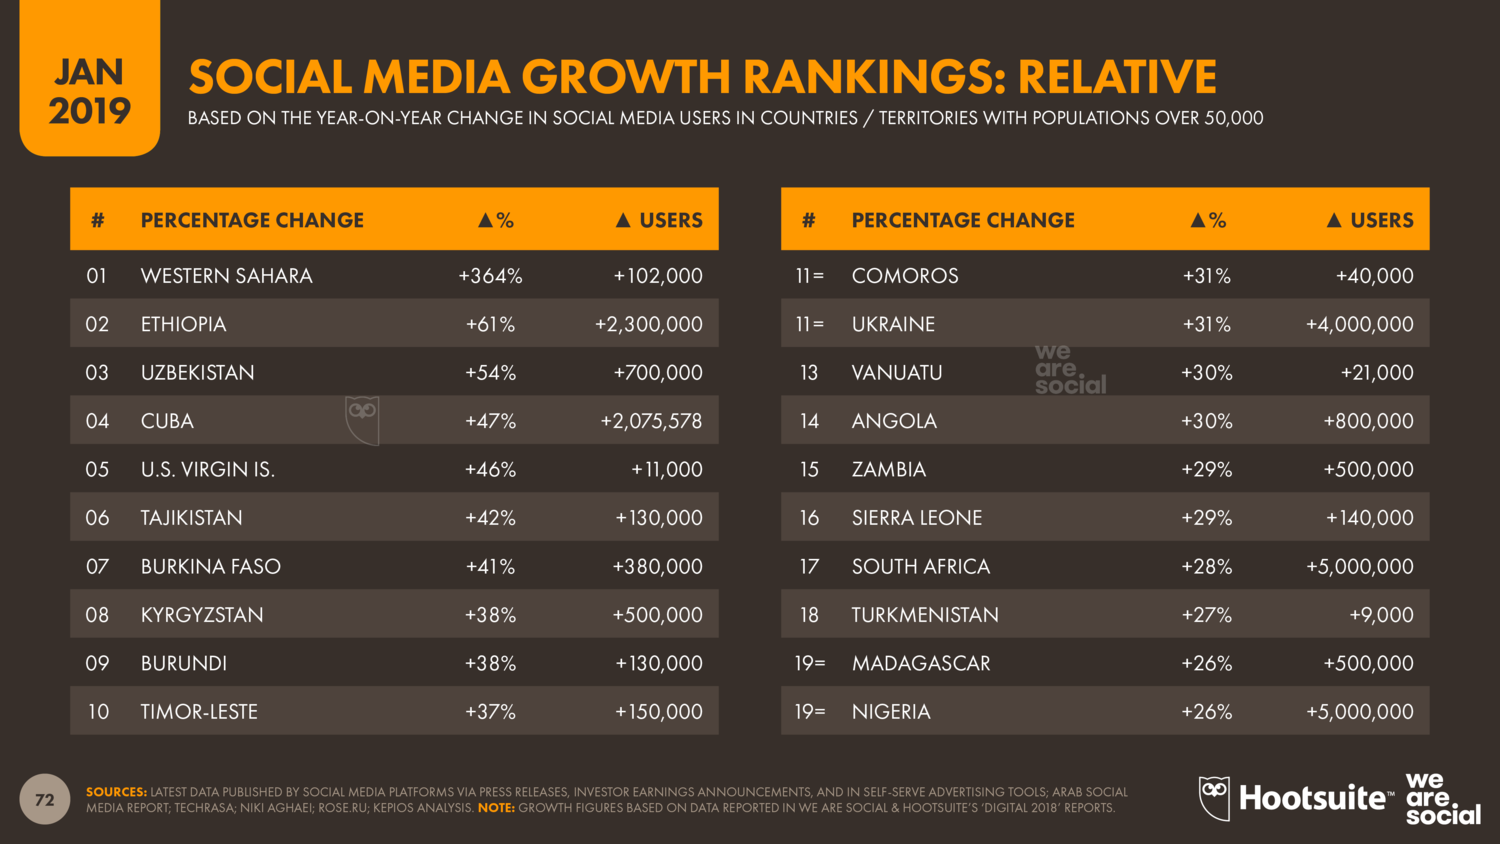 Annual+Growth+in+Social+Media+Users+January+2019+DataReportal